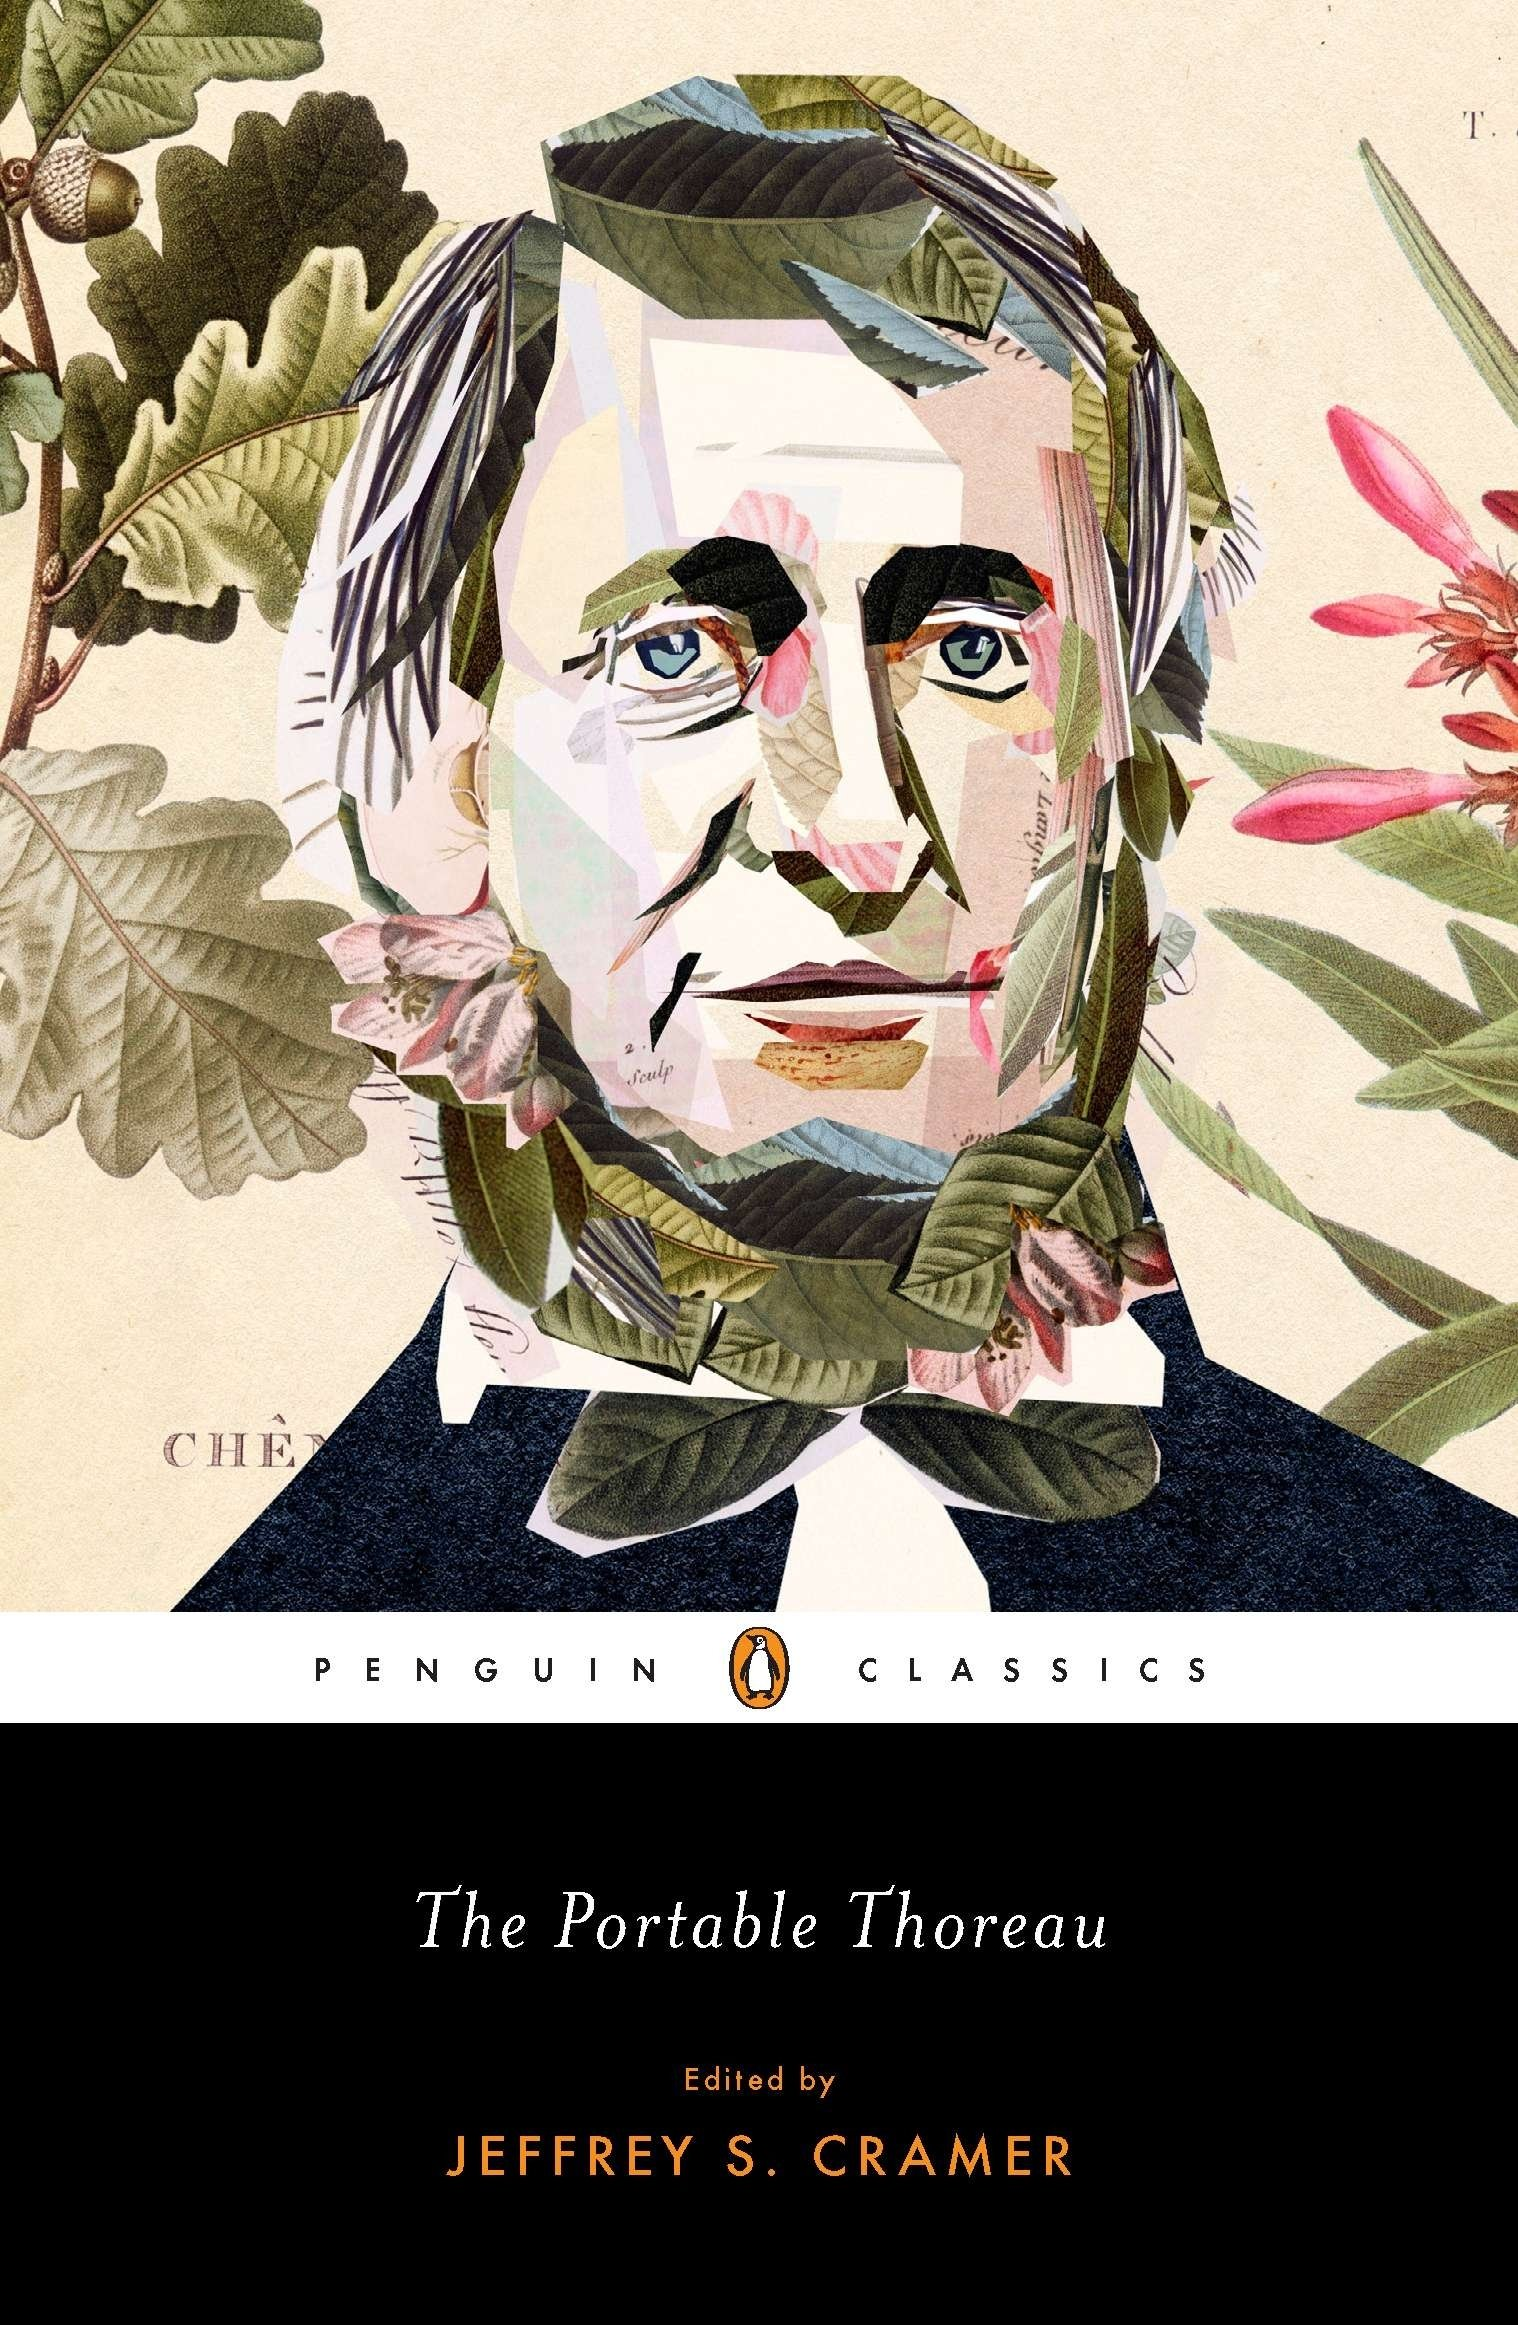 the portable thoreau penguin classics henry david thoreau the portable thoreau penguin classics henry david thoreau jeffrey s cramer 9780143106500 com books